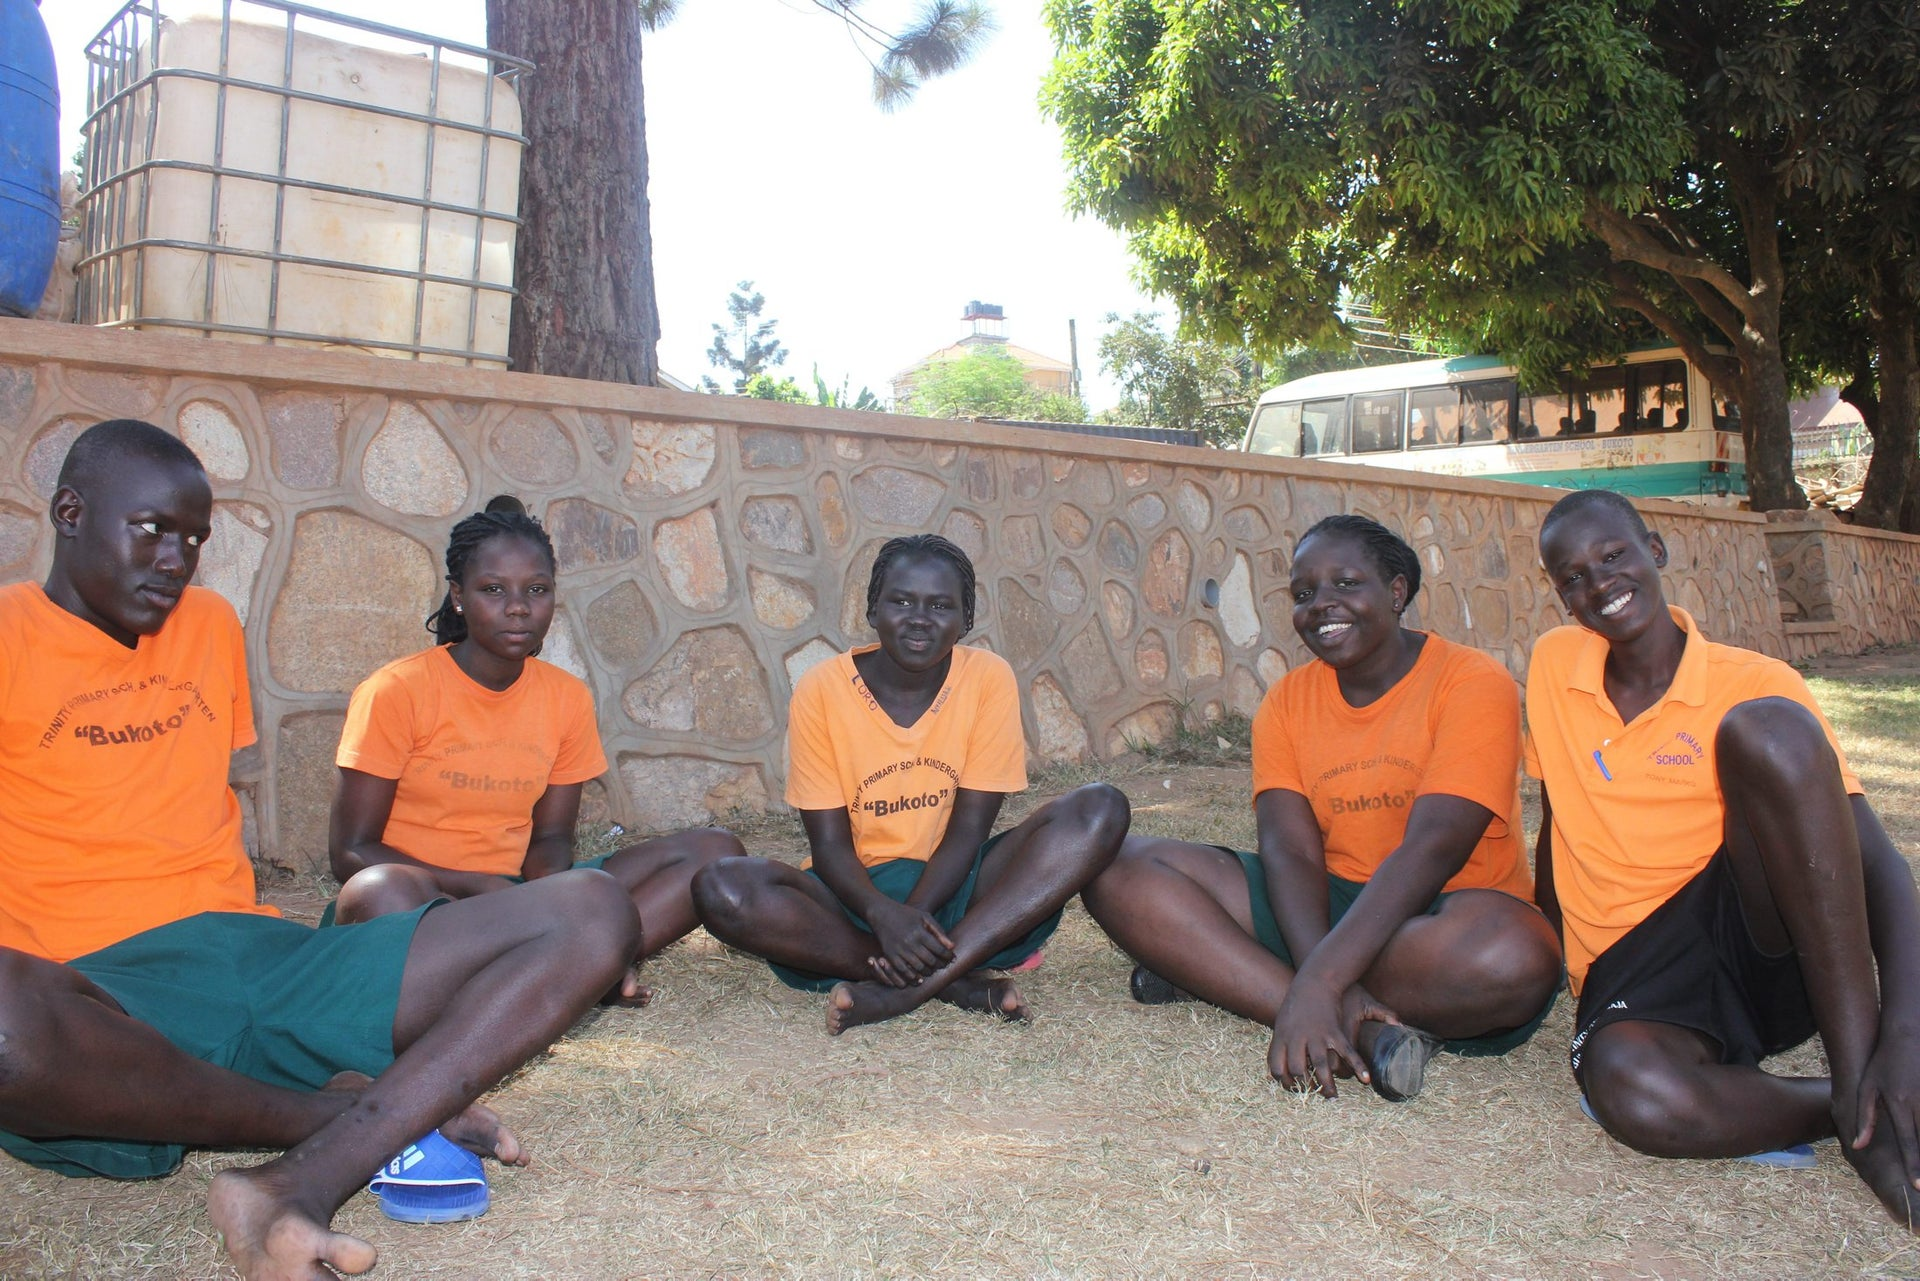 South Sudanese teens who were expelled from Israel with their families and now participate in the Come True project, March 14, 2018.